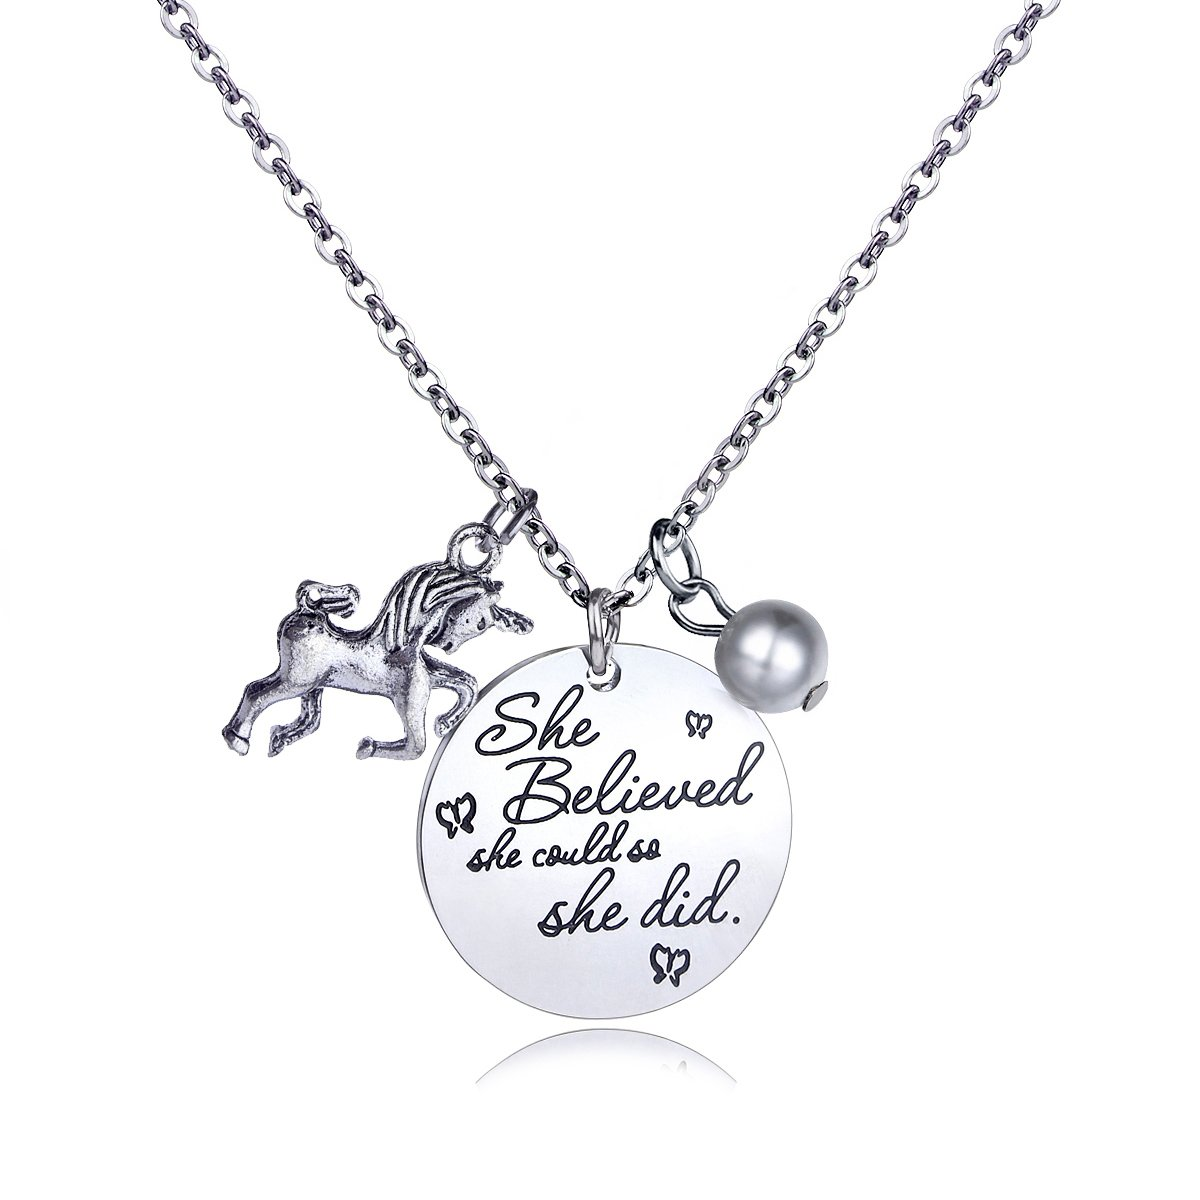 Stainless Steel Horse And Pearl Pendant Necklace Letter Tag Necklace''She Believed She Could So She Did''pendant for girl and boy Inspirational gift